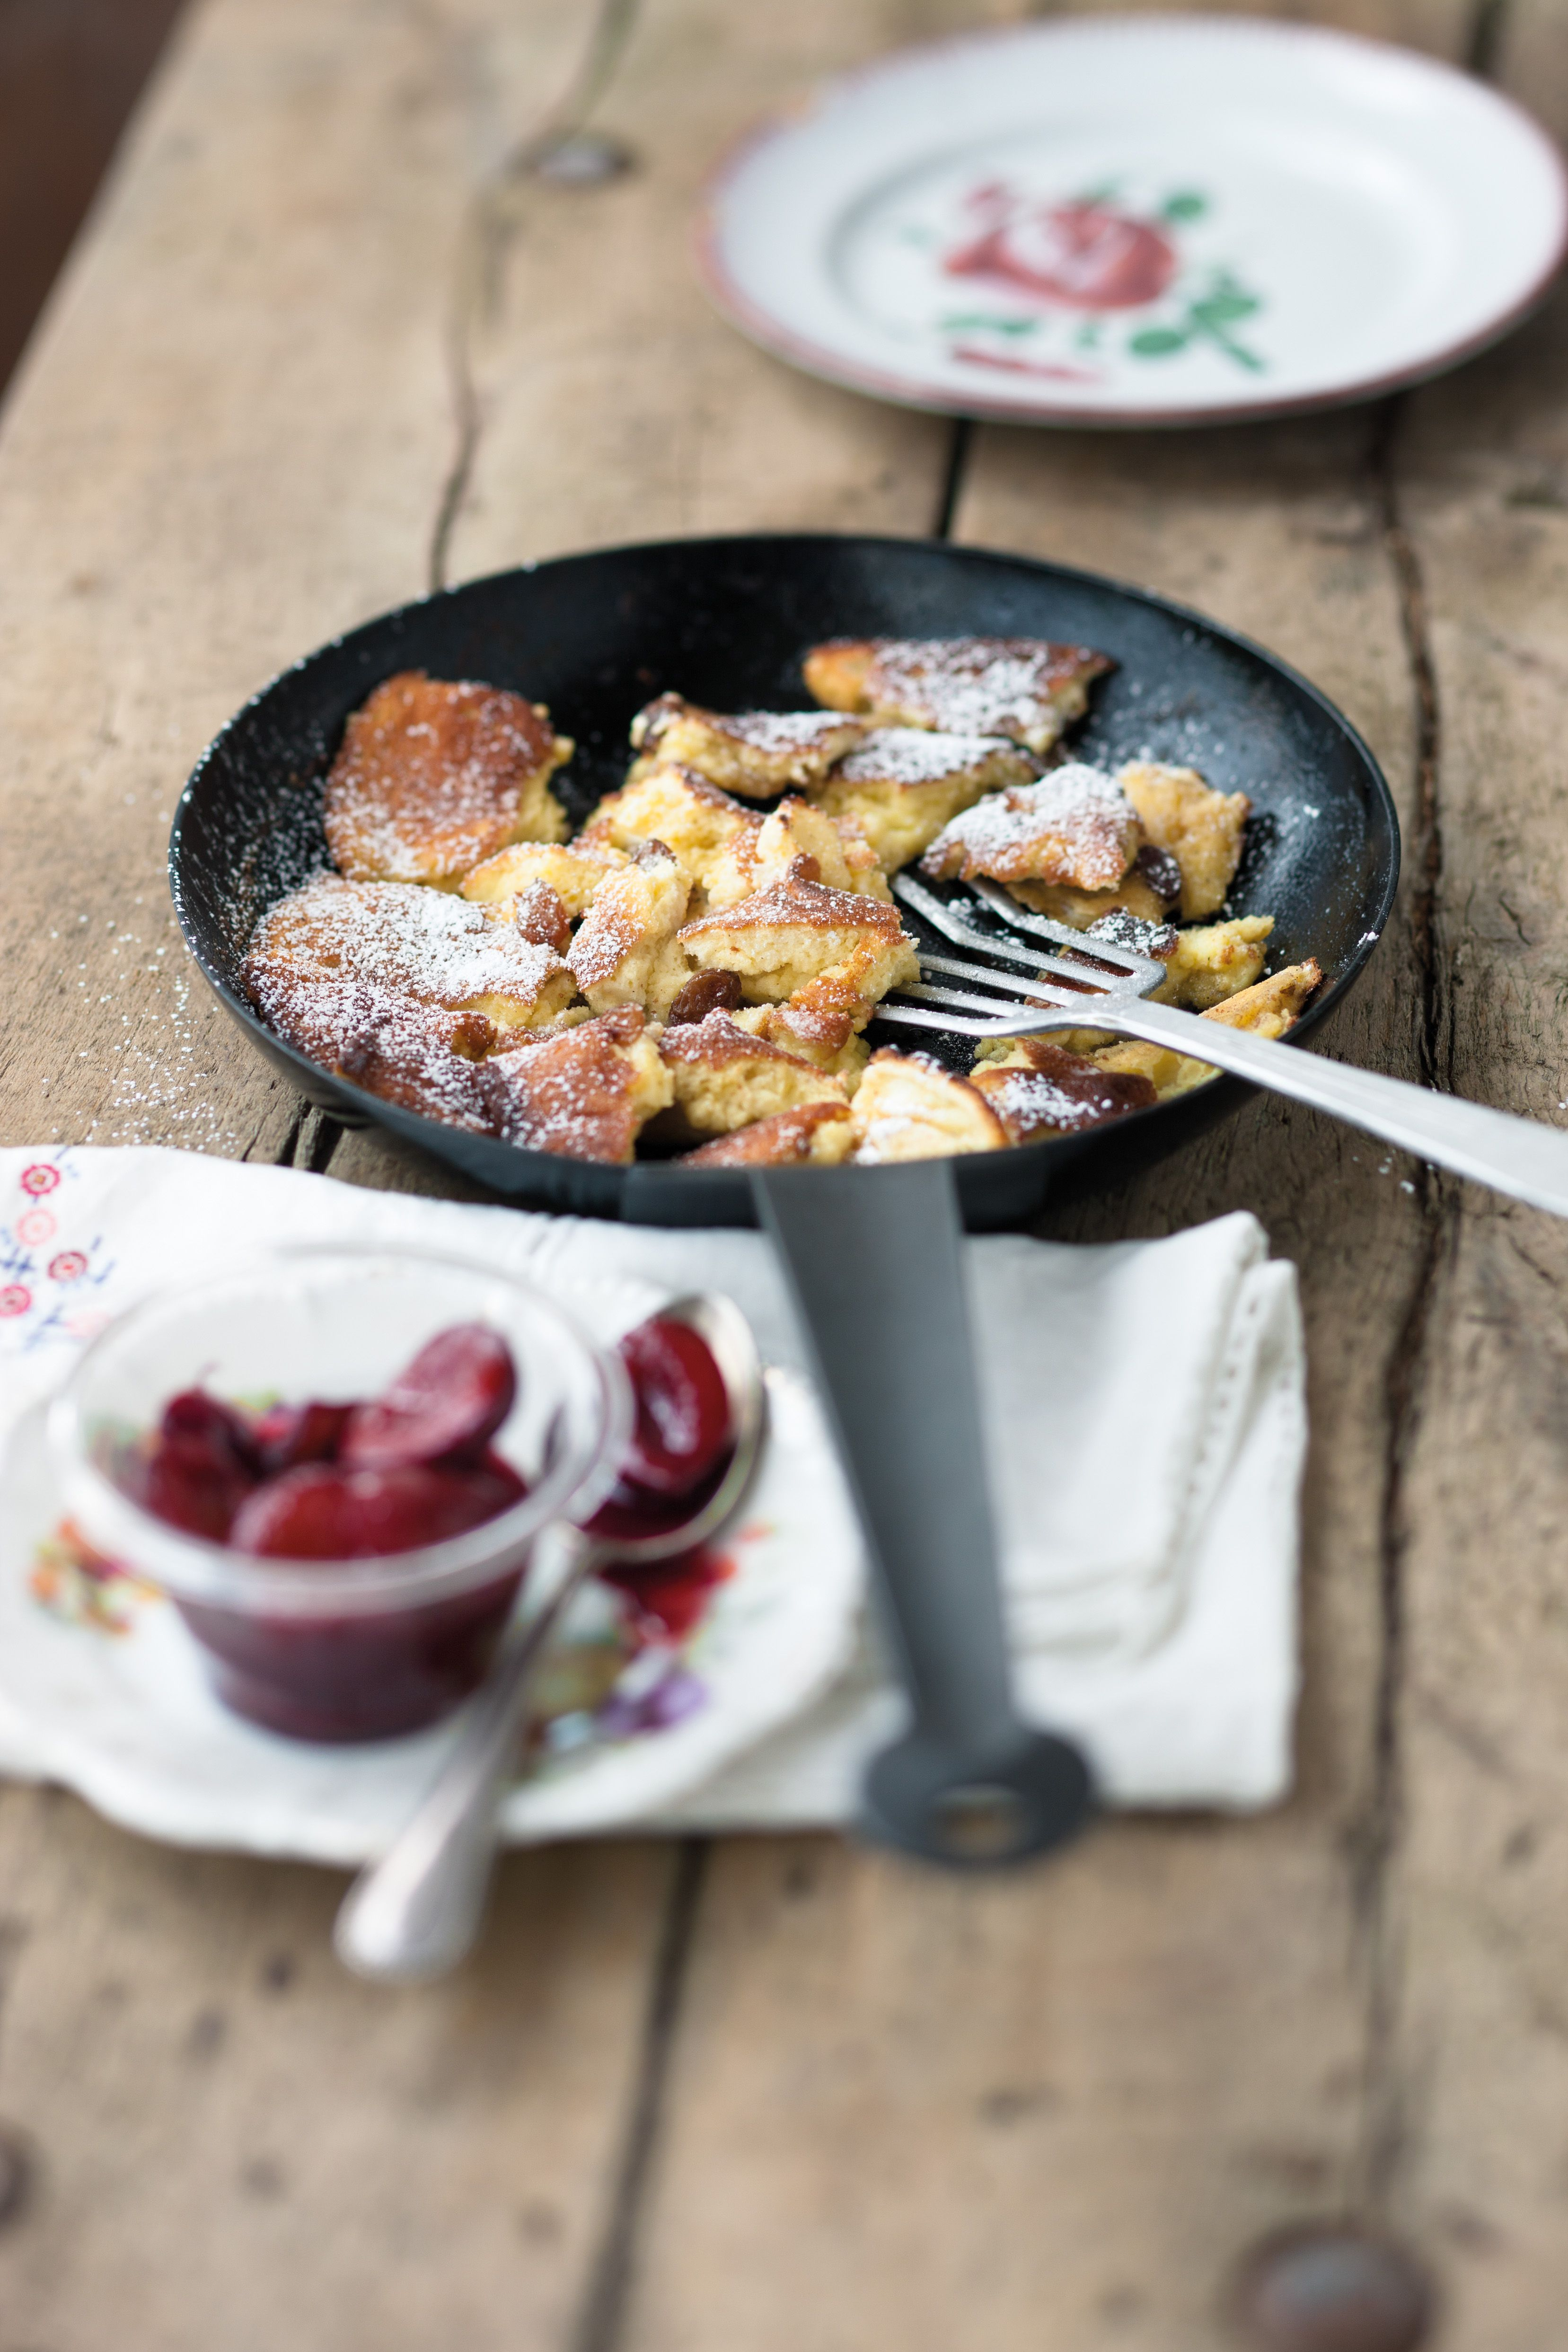 Kaiserschmarrn recipe austrian food you have to taste kaiserschmarrn recipe austrian food you have to taste pinterest austria pancakes and kaiserschmarrn forumfinder Image collections